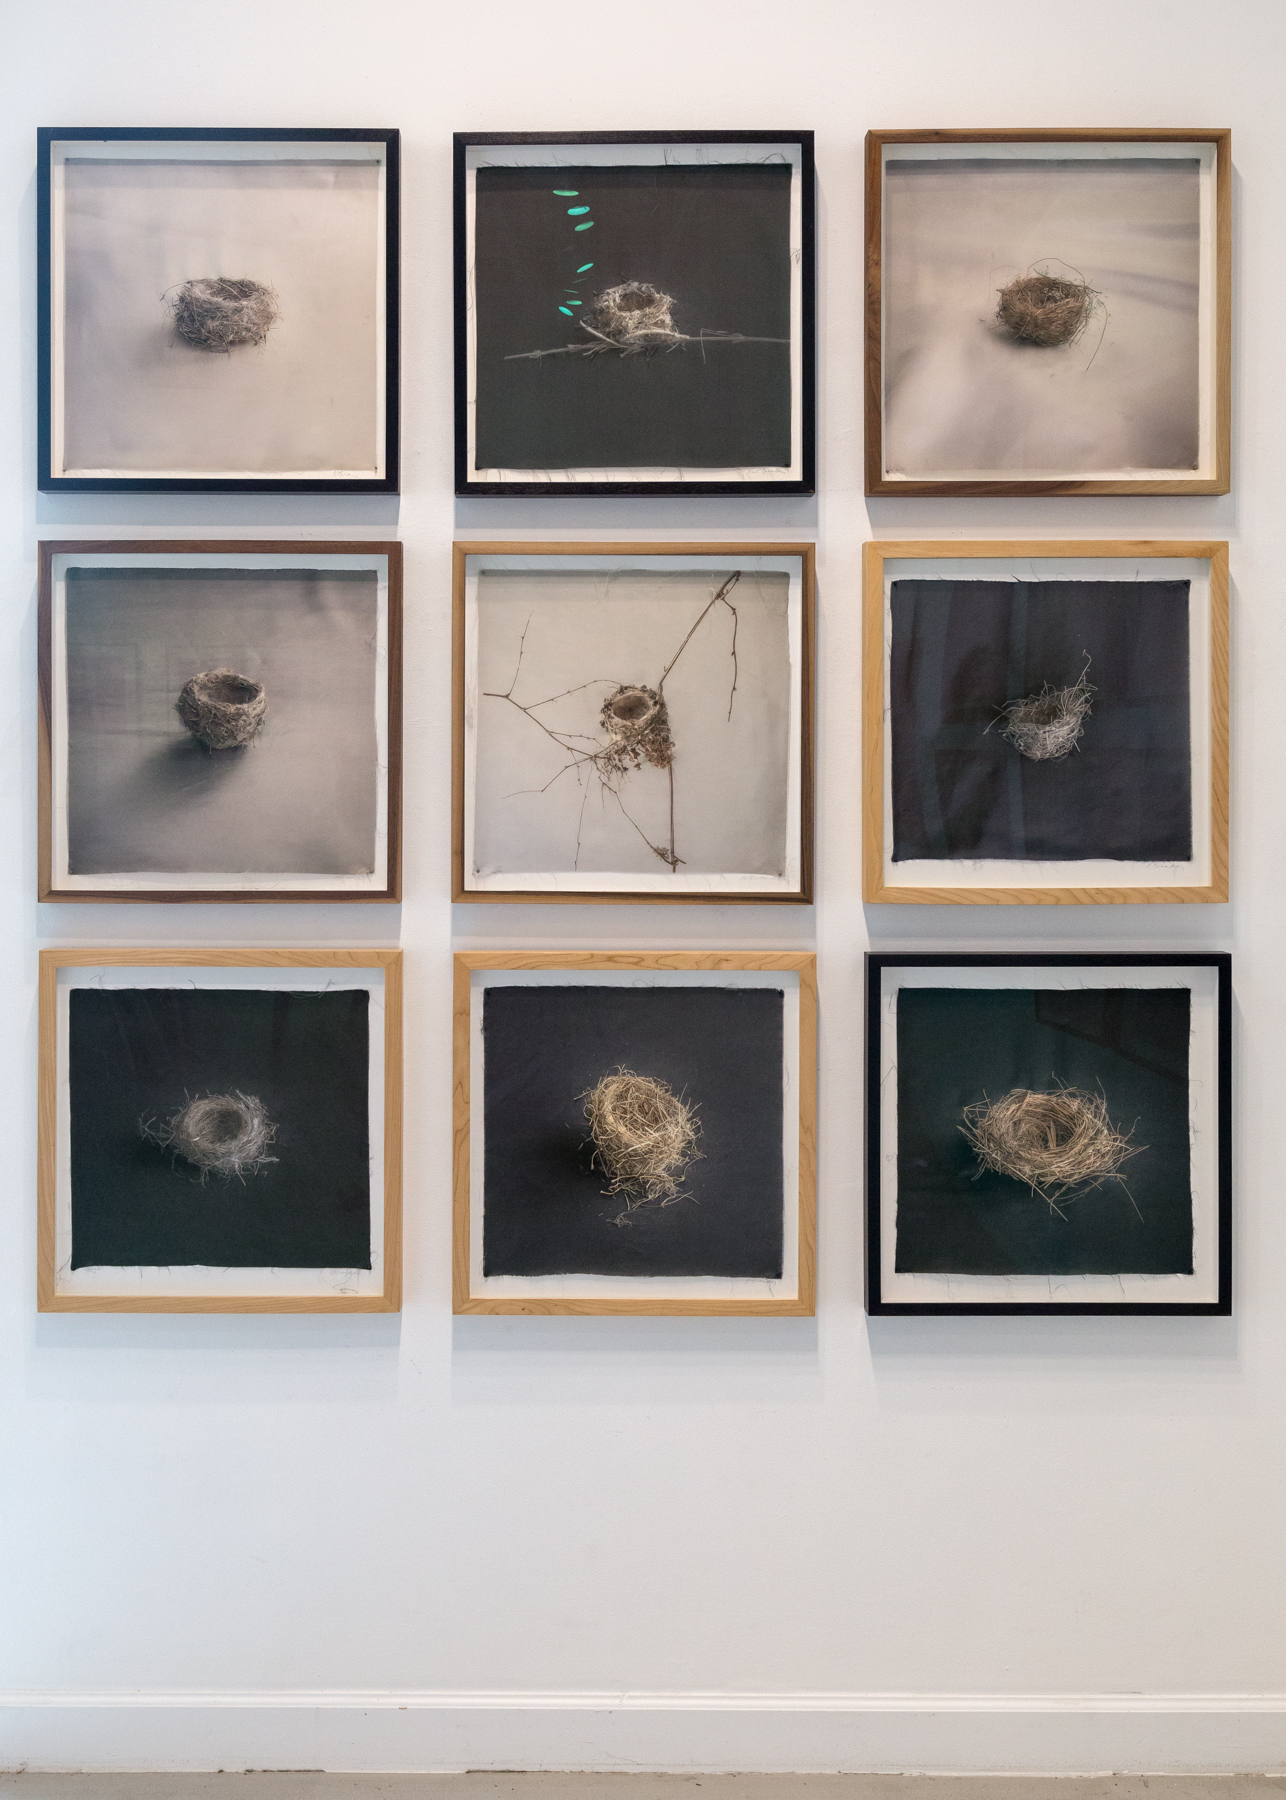 Kate Breakey, Avian, Catherine Couturier Gallery, Houston, Texas, Installation photograph by Erica Lee